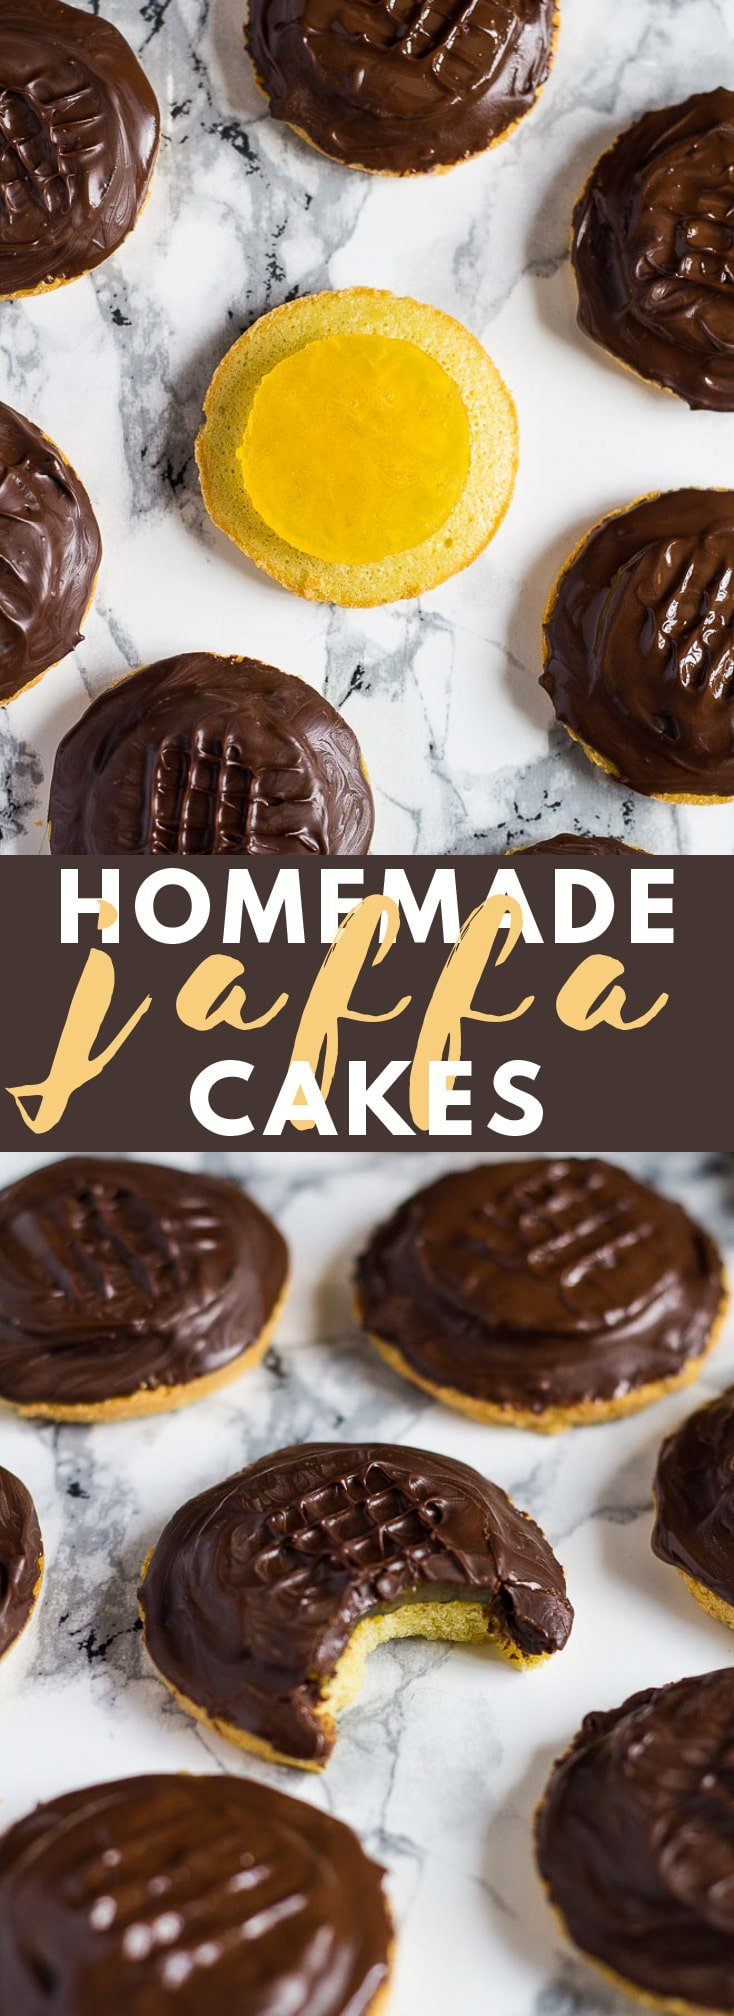 Homemade Jaffa Cakes - A British classic. Biscuit sized cakes topped with an orange jelly and sealed with dark chocolate! #jaffacakes #homemade #cakerecipes #chocolaterecipes